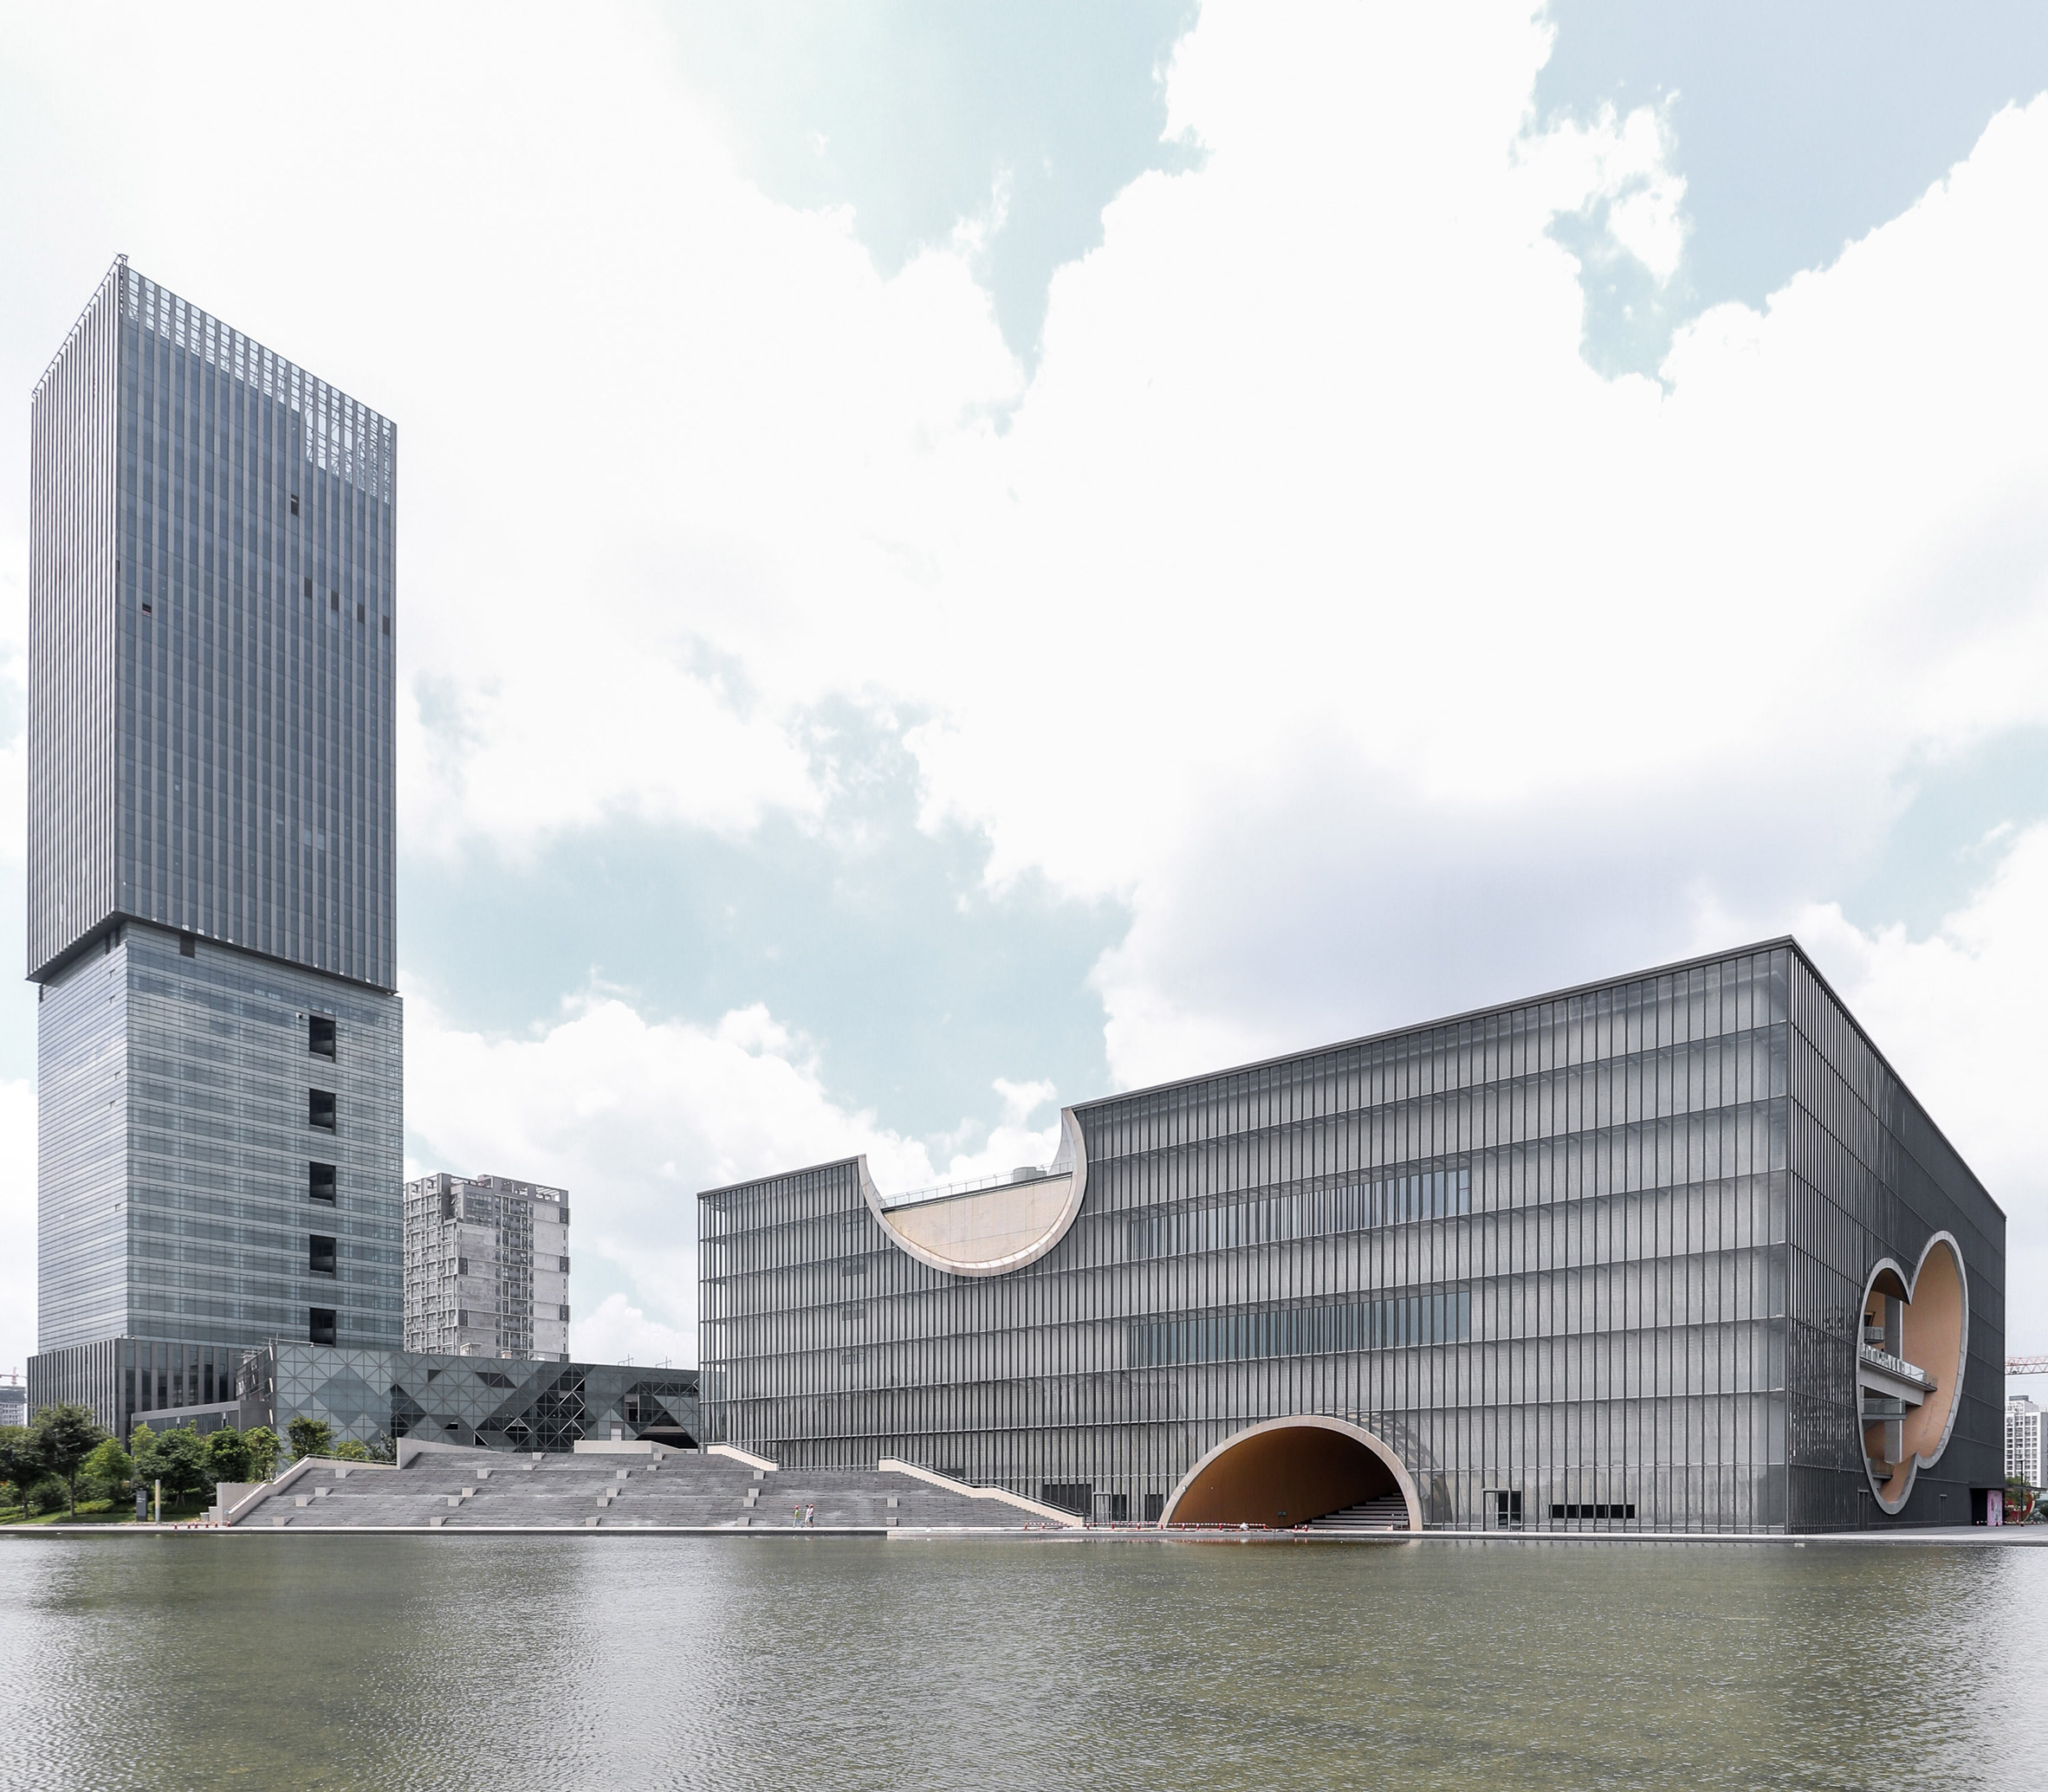 Tadao Ando's Shanghai Poly Grand Theatre captured in new photographs